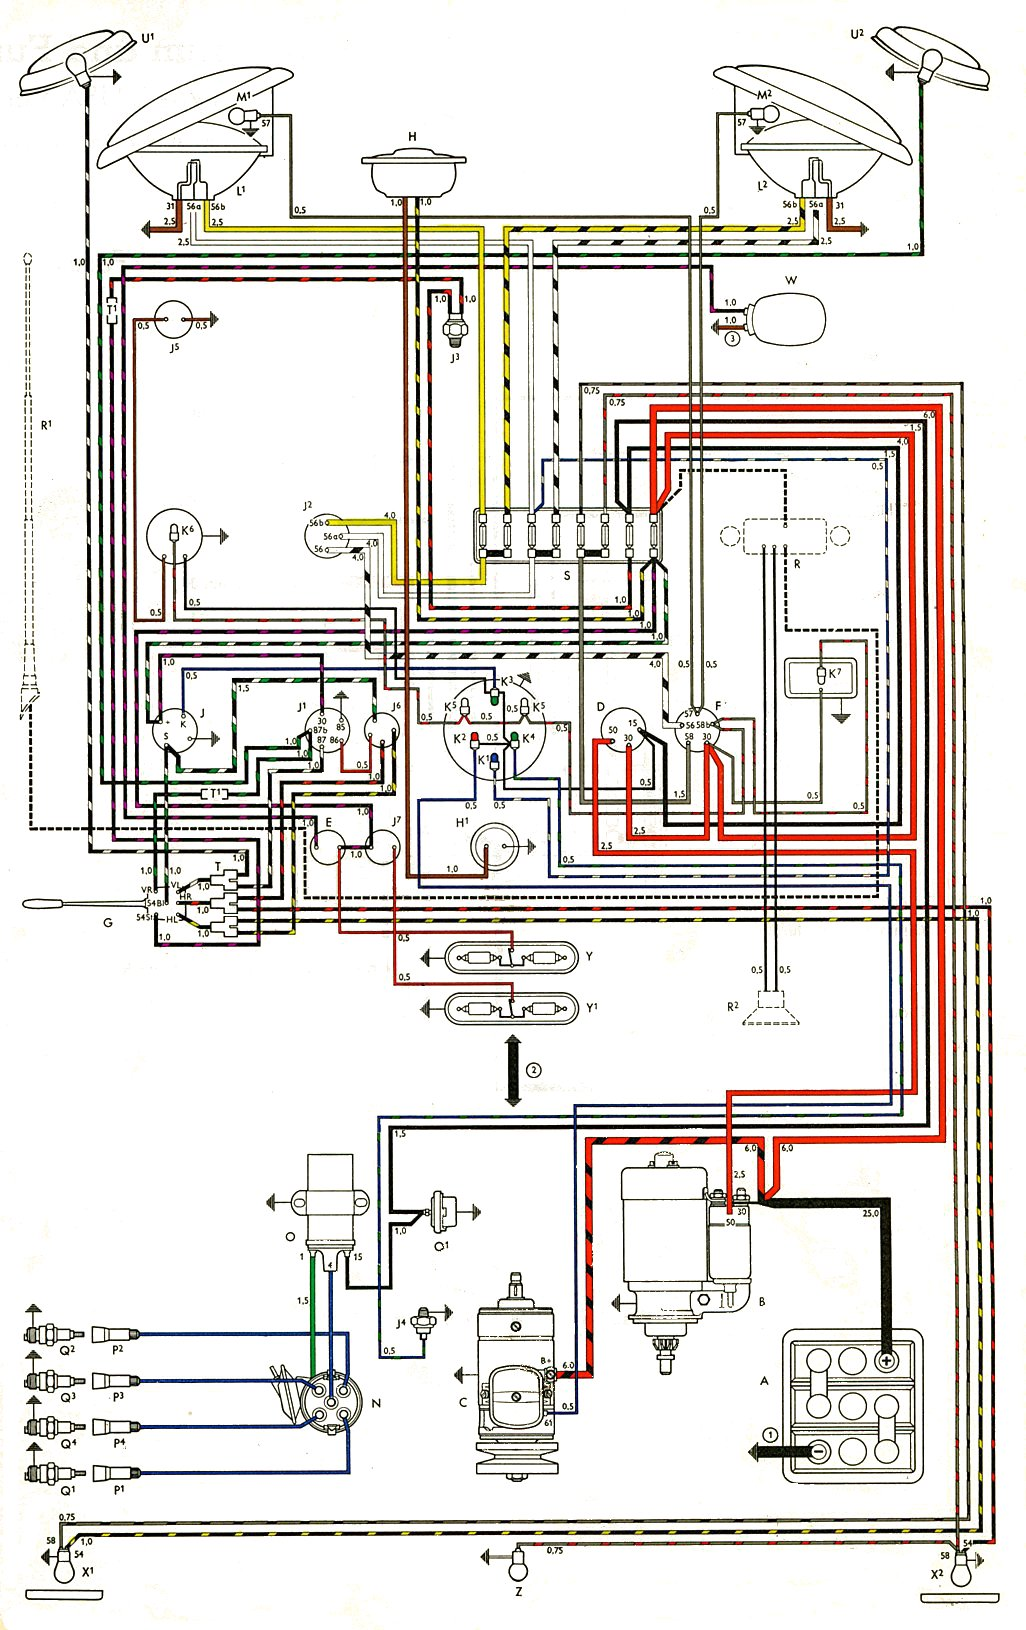 65 vw bug wiring harness wiring diagram schematics65 vw bug fuse diagram wiring diagram vw bug throttle cable 65 vw bug wiring harness